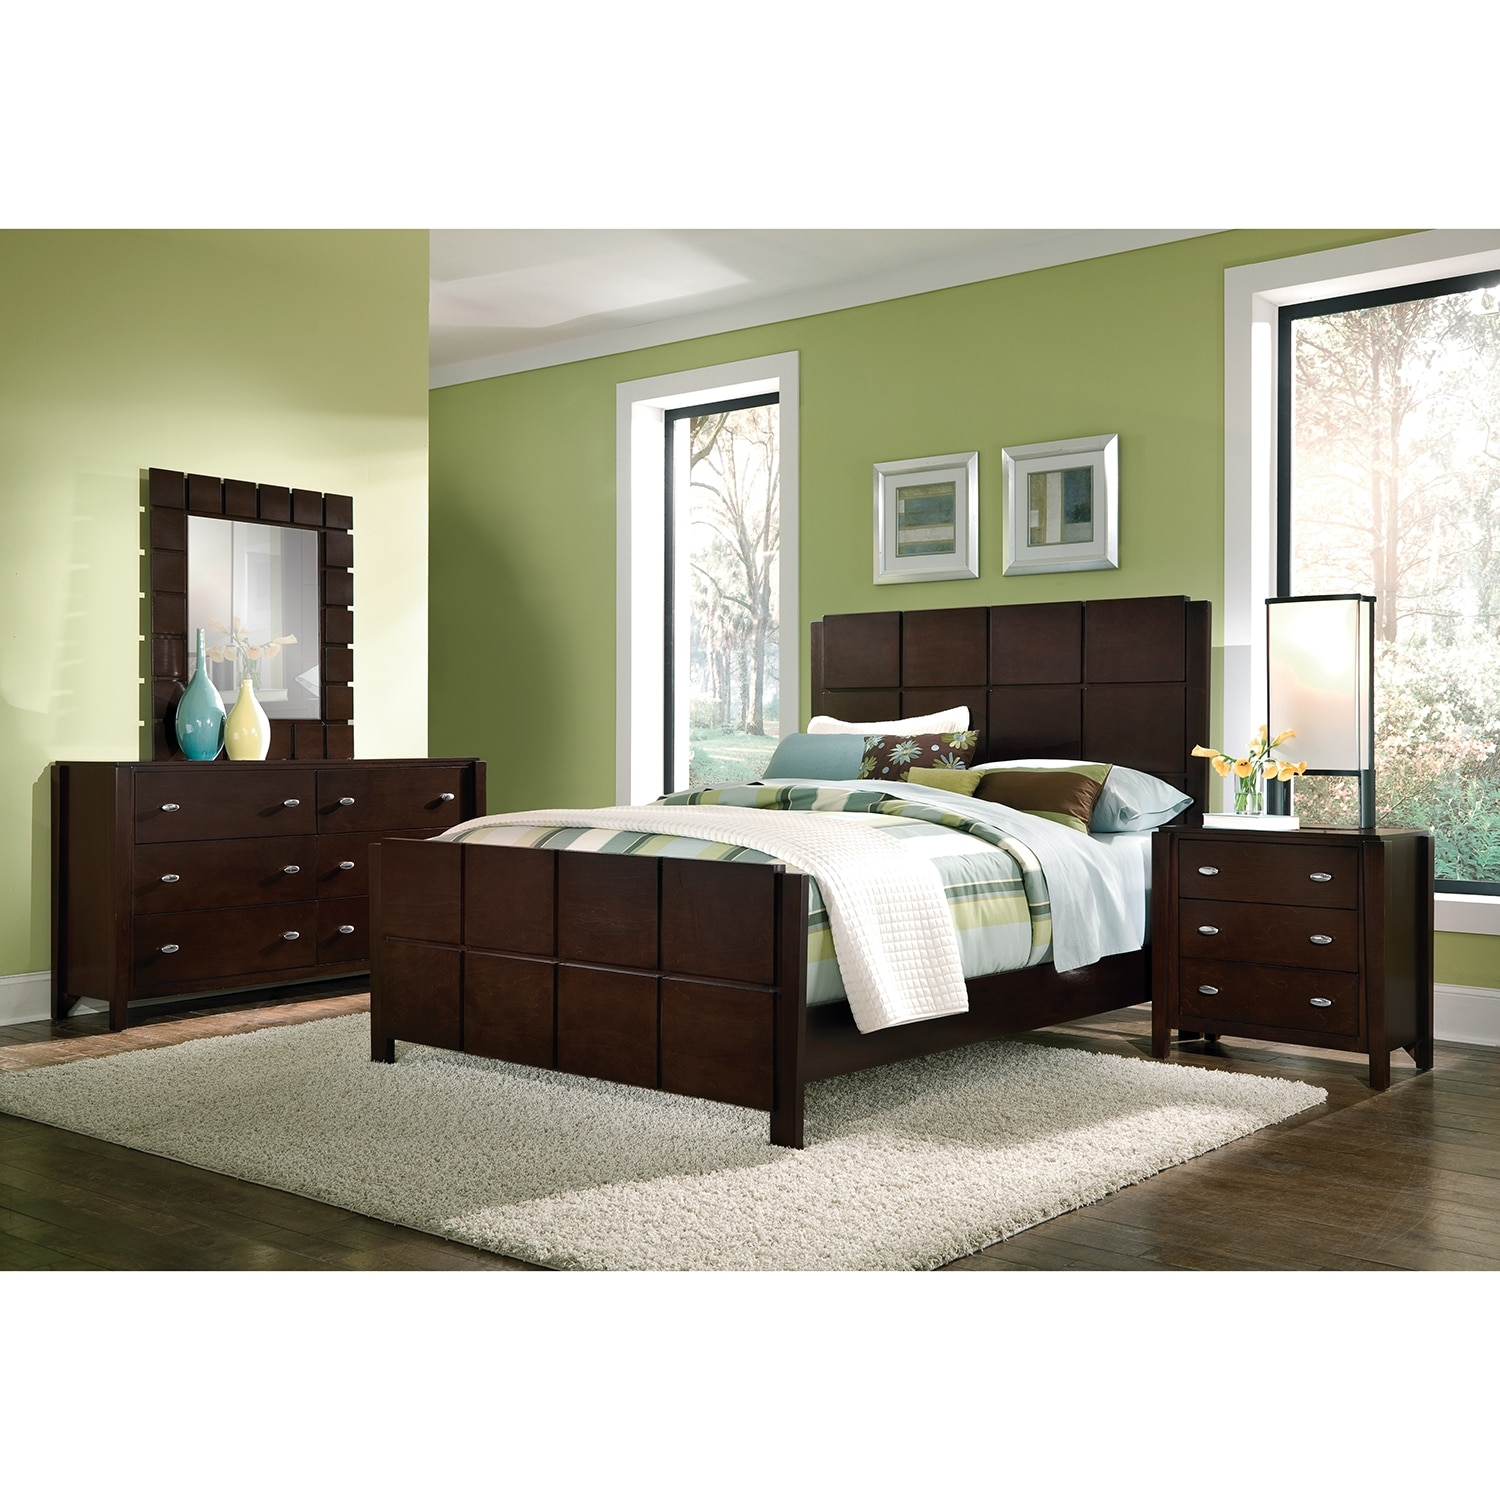 Bedroom Furniture - Mosaic 6 Pc. Queen Bedroom